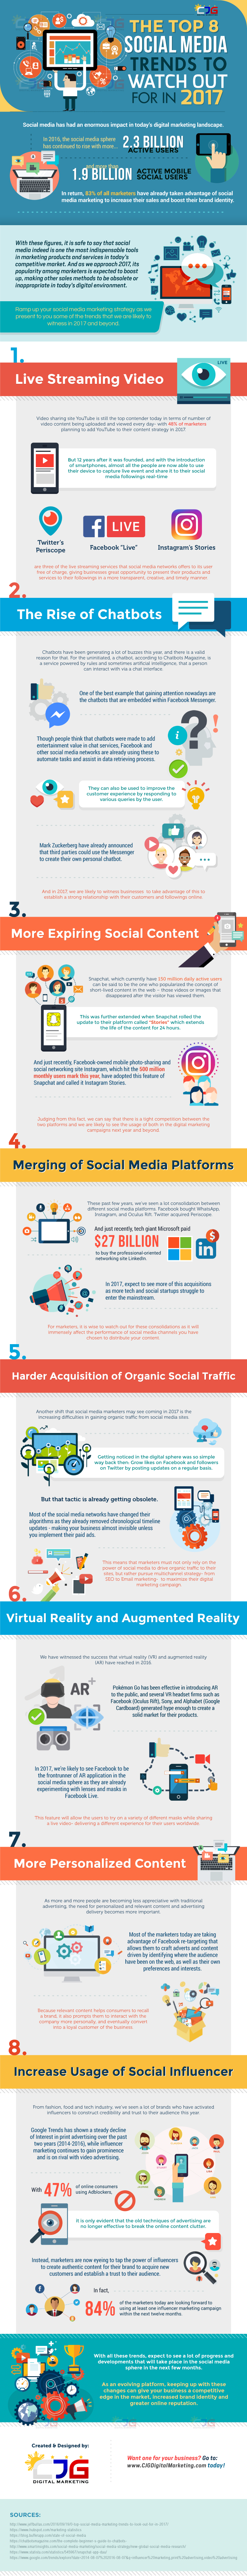 The Top 8 Social Media Marketing Trends in 2017 [Infographic]